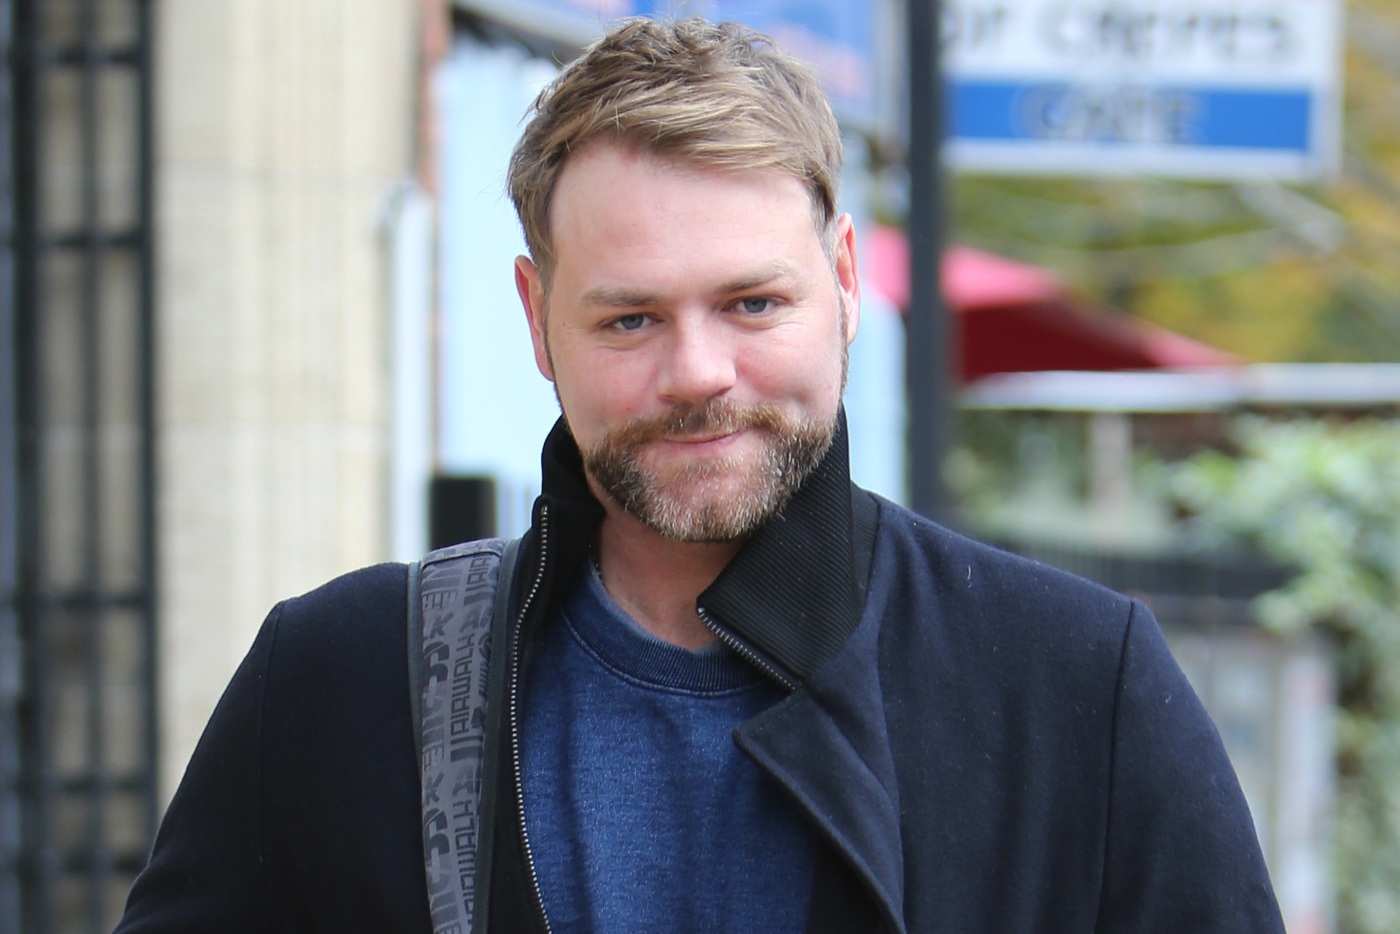 Brian McFadden and Delta Goodrem had a truly gross fetish, according to his friend